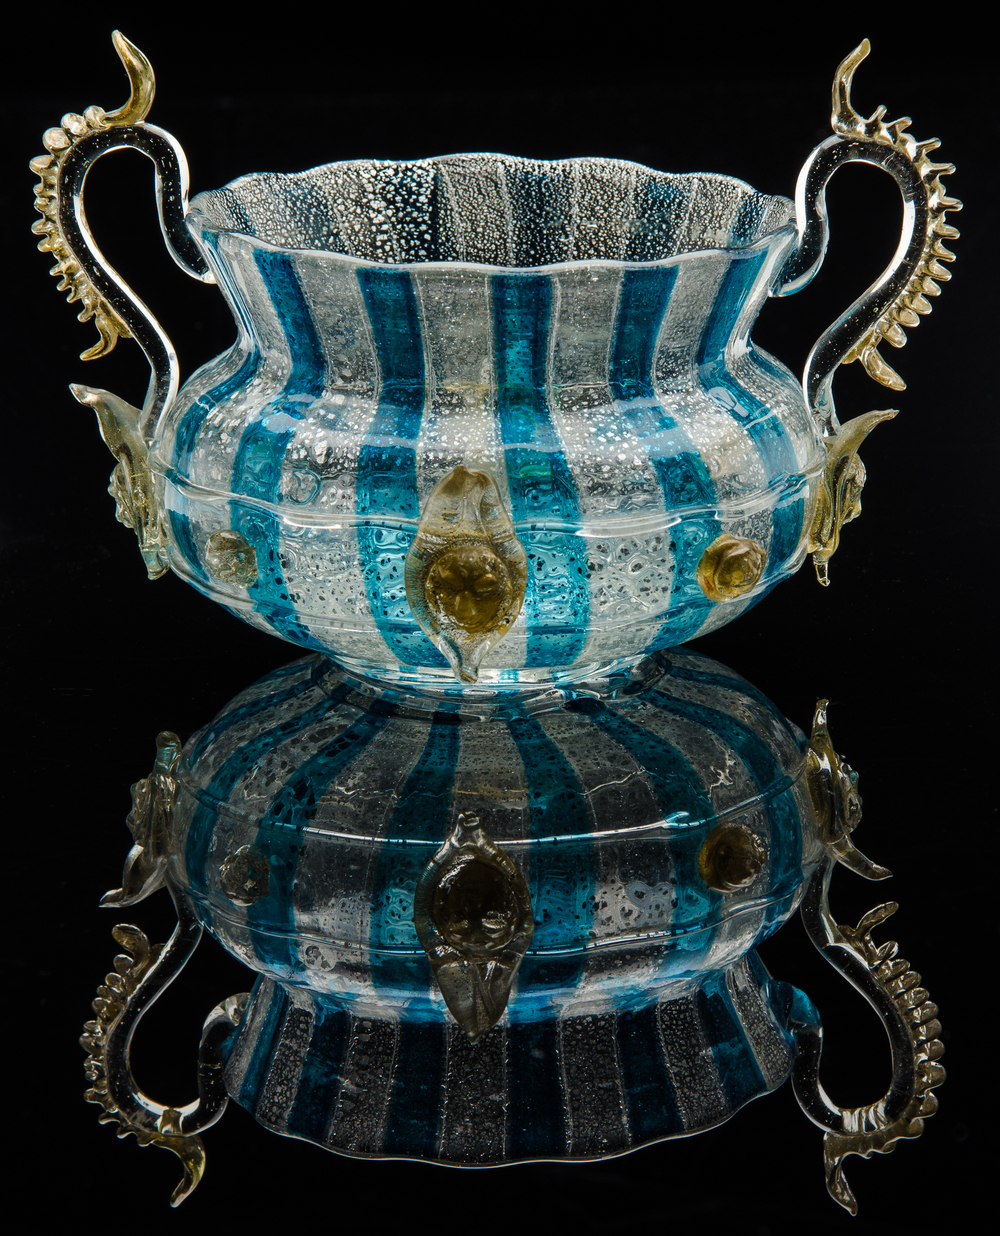 Salviati and Company,  Blue and Clear Double-Handled Bowl with Gold Prunts  (circa 1895, glass), VV.274